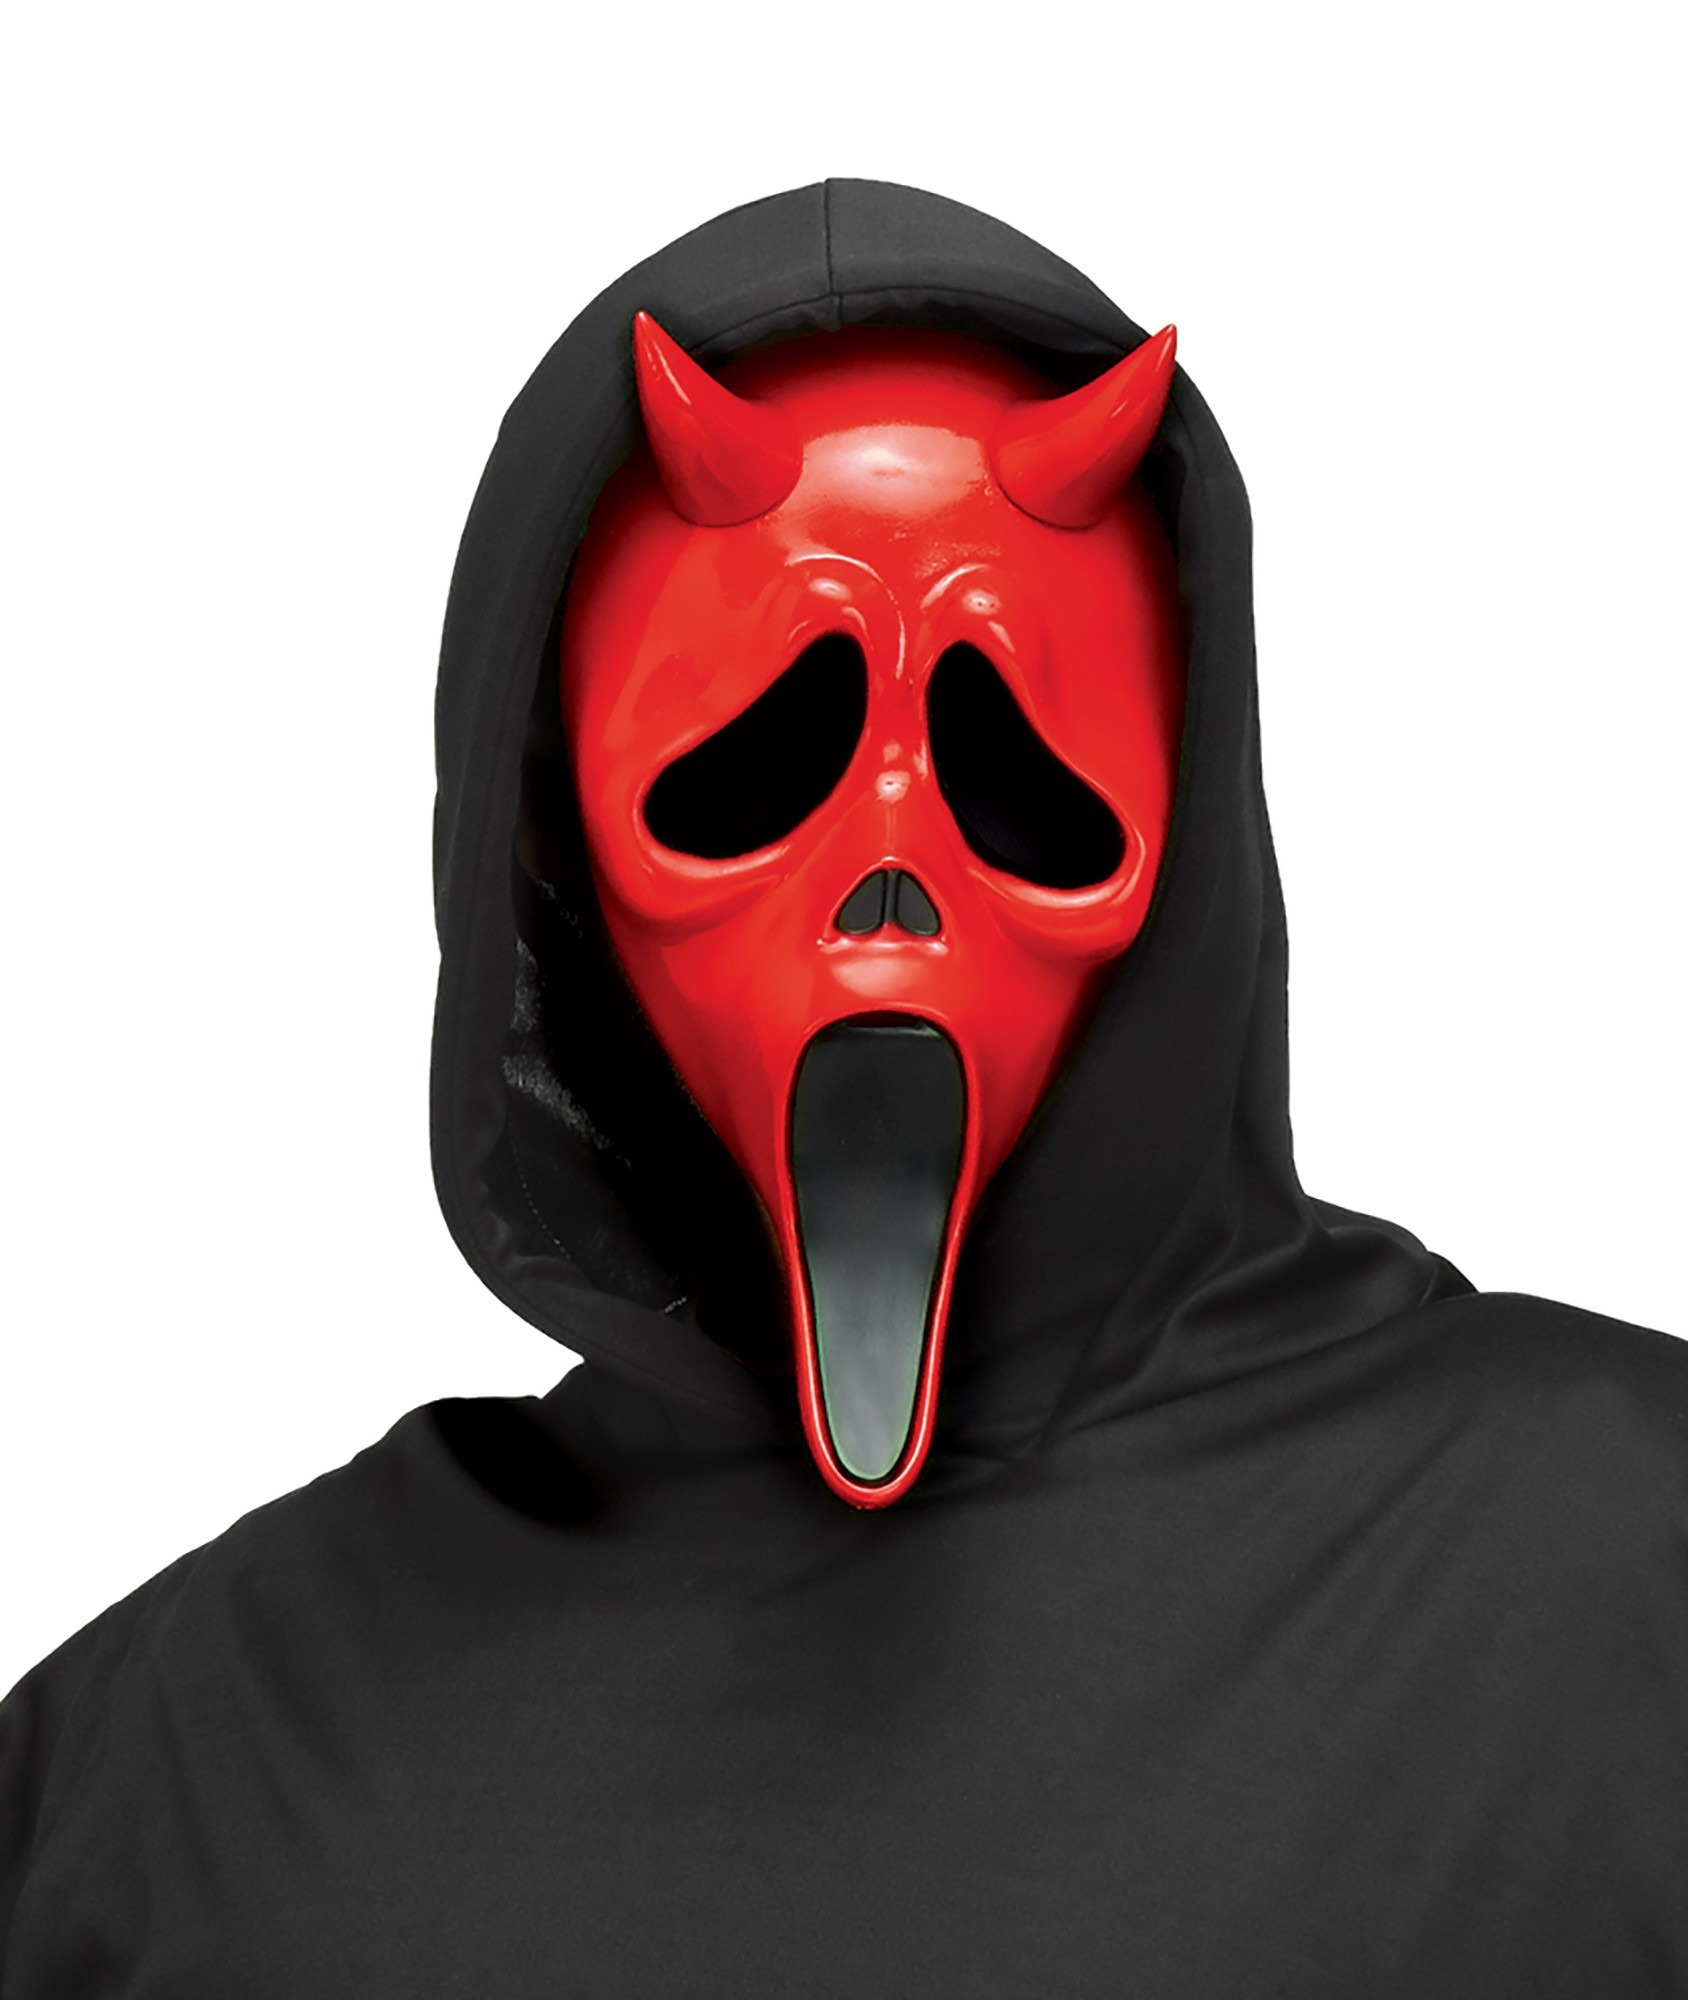 GhostFace Mask Archives - GhostFace.co.uk - Ghostface-The icon of ...